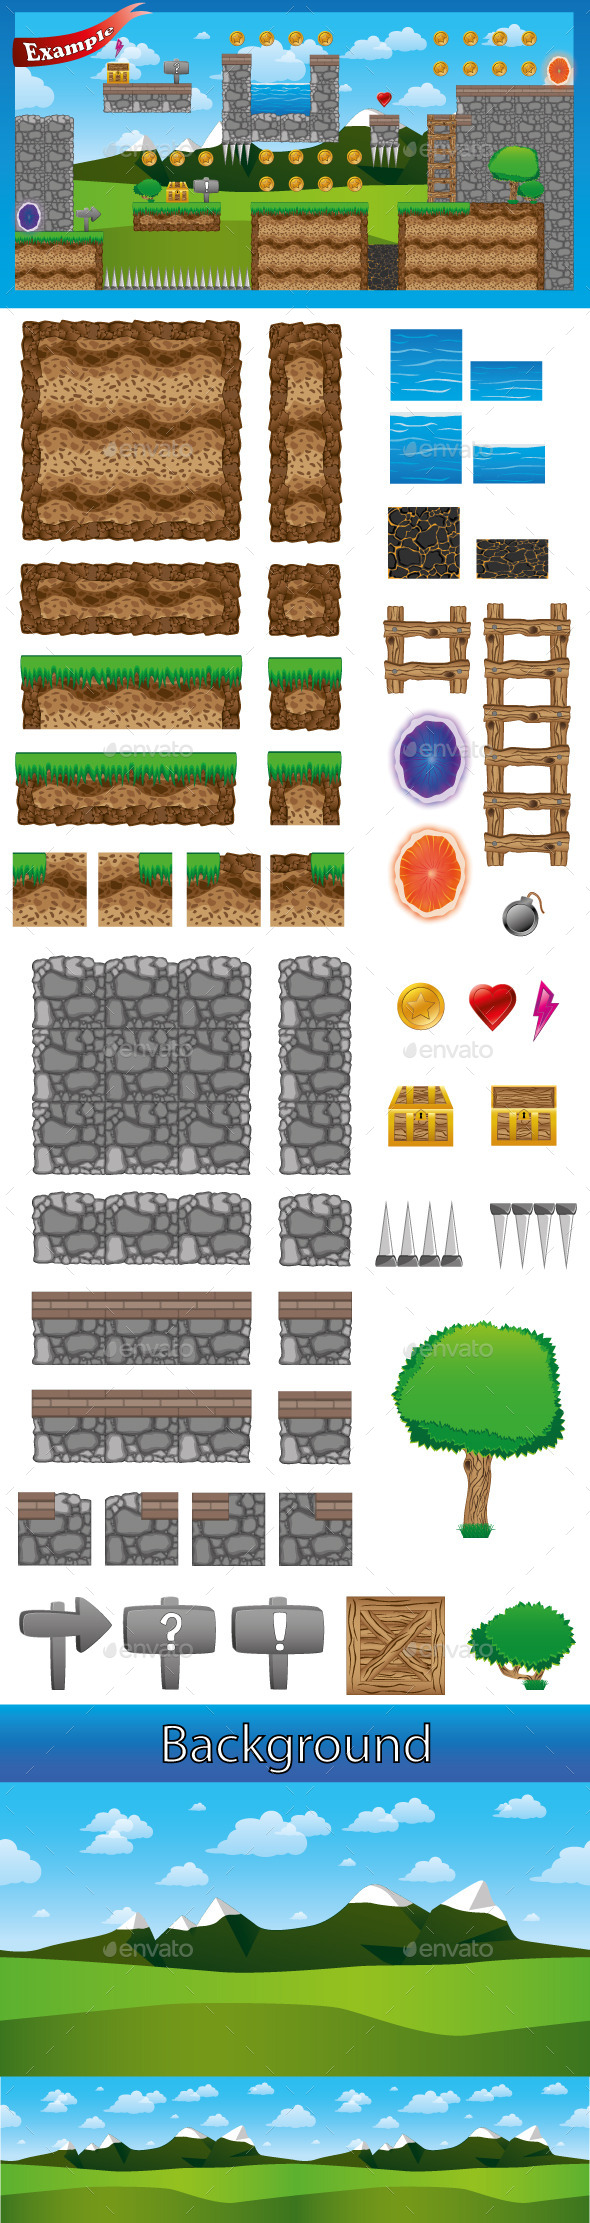 GraphicRiver Platformer Game Tileset 9091446